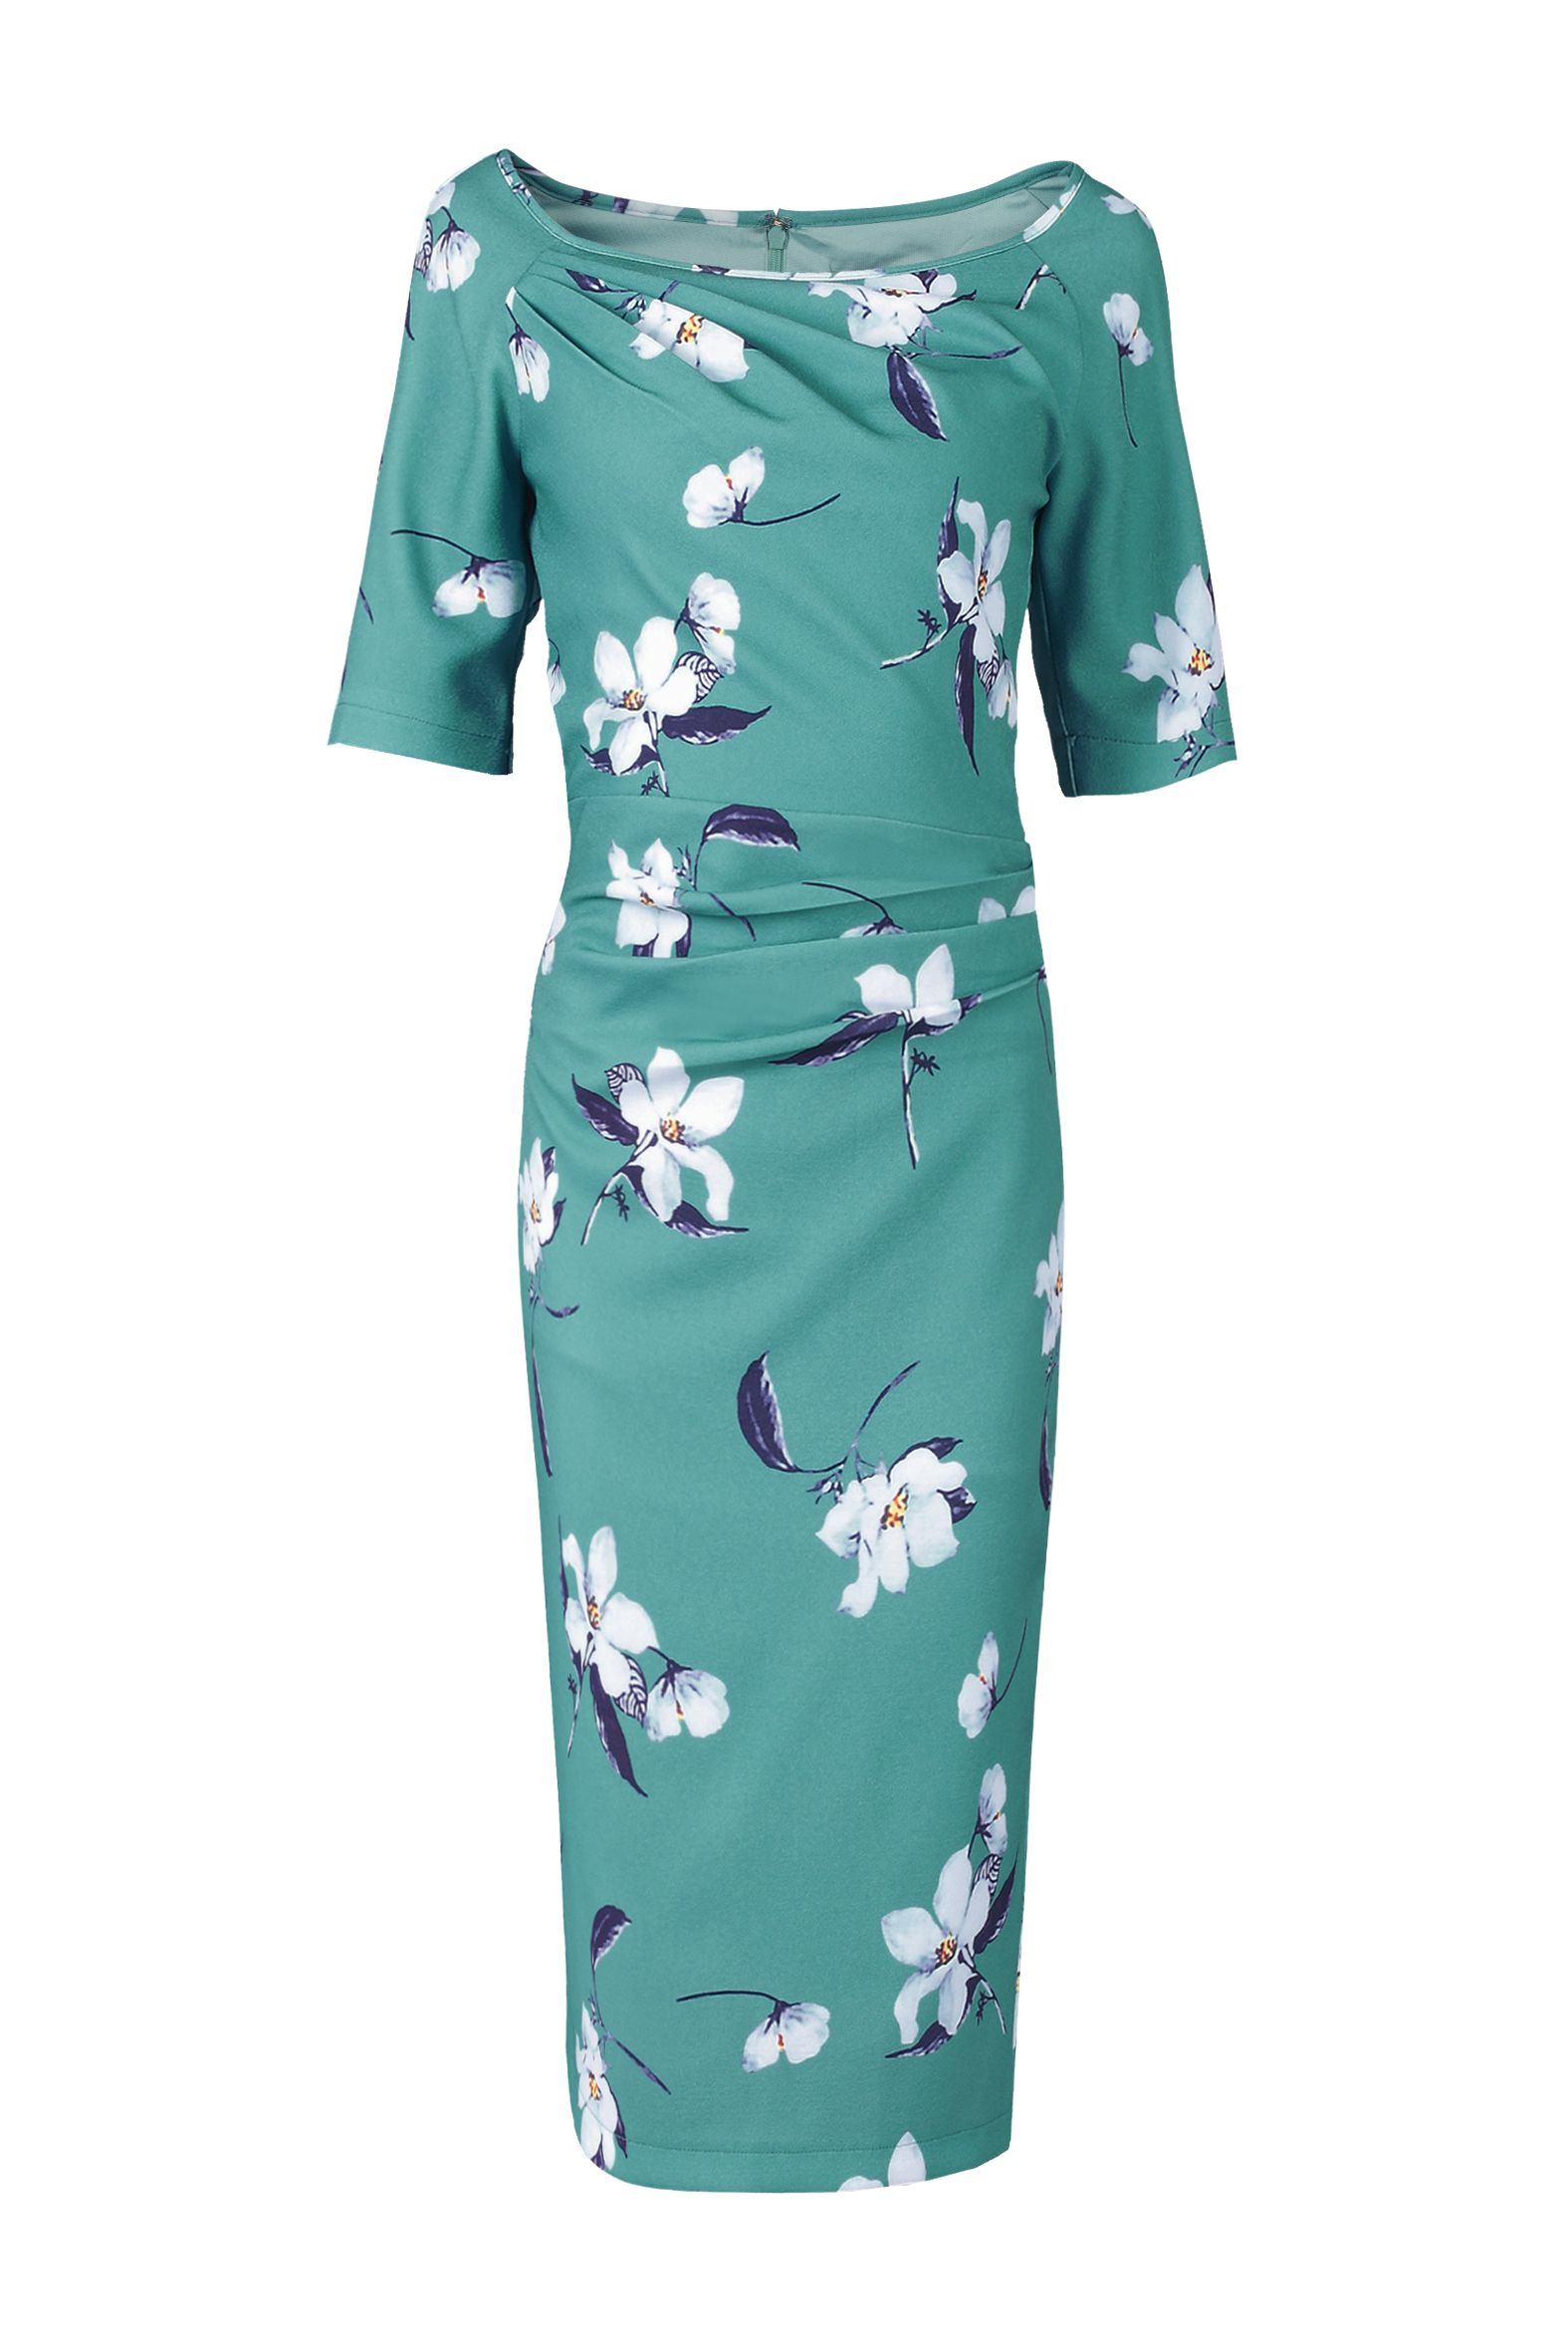 Jolie Moi Floral Print 1/2 Sleeve Dress, Teal